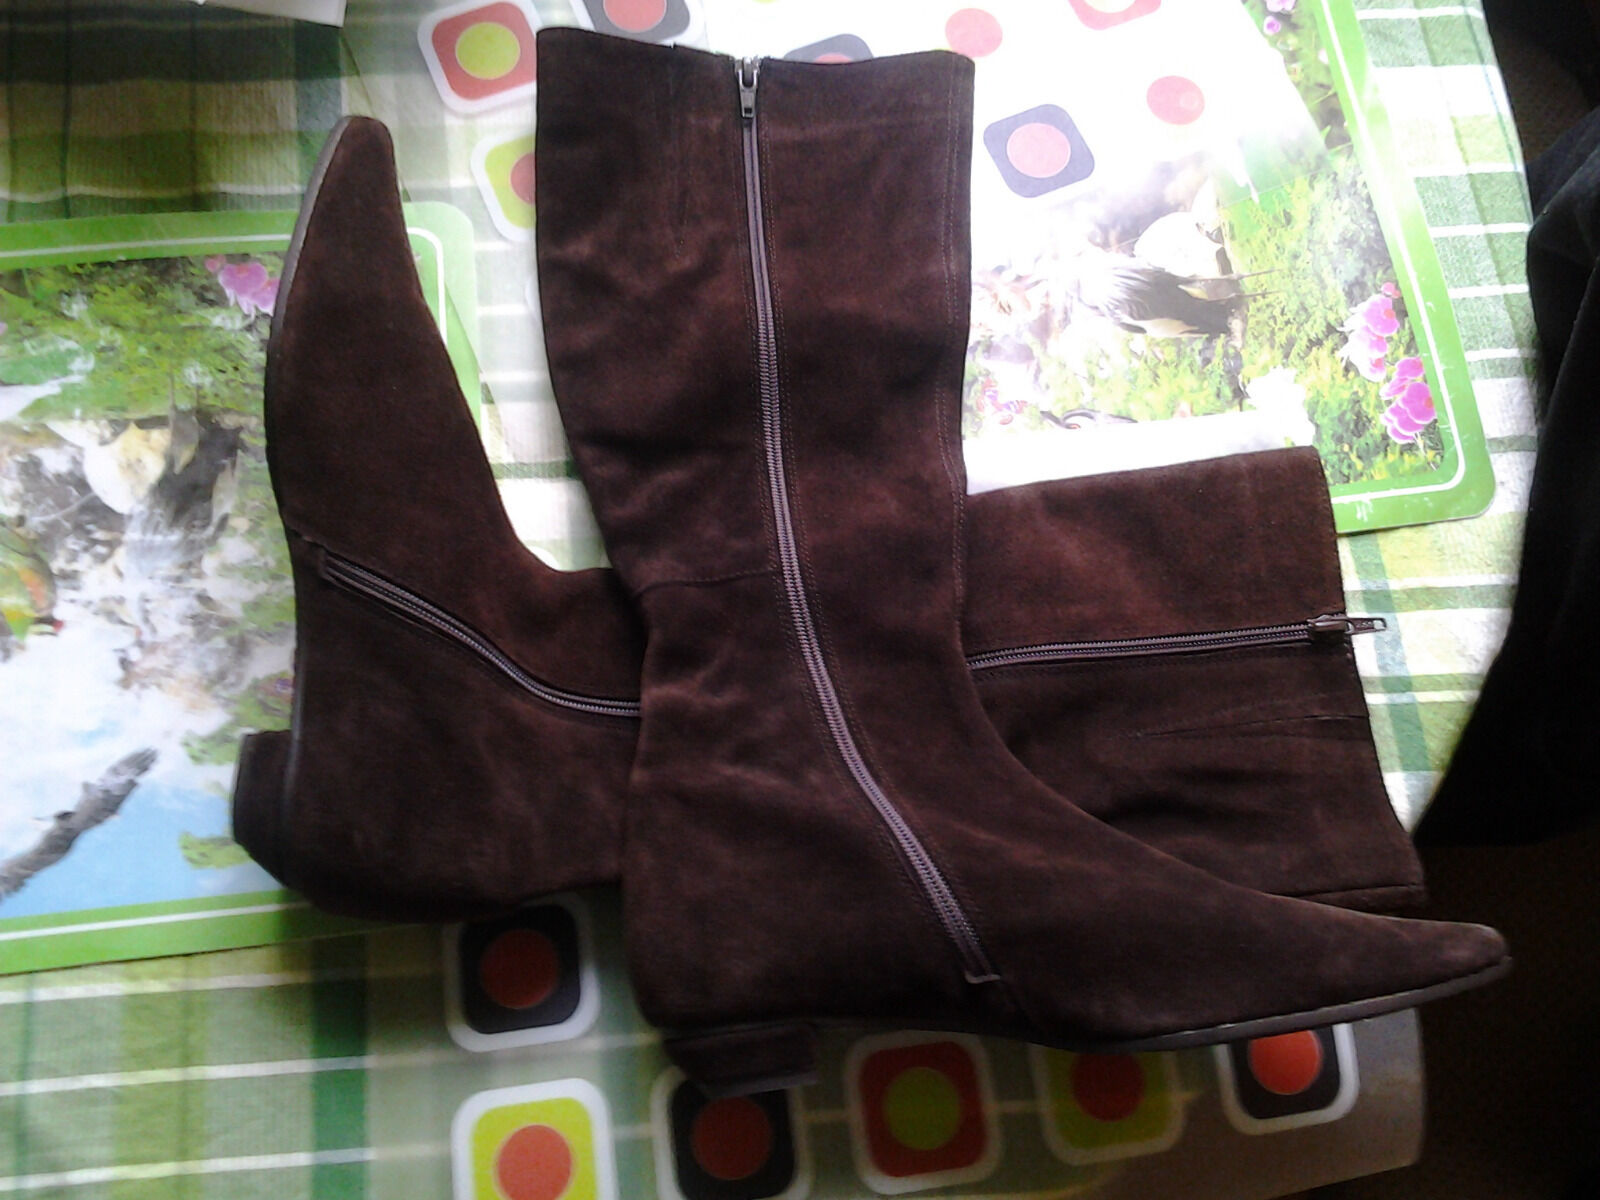 SUEDE HIGH BOOTS BROWN BROWN BROWN 38 SIZE a05875